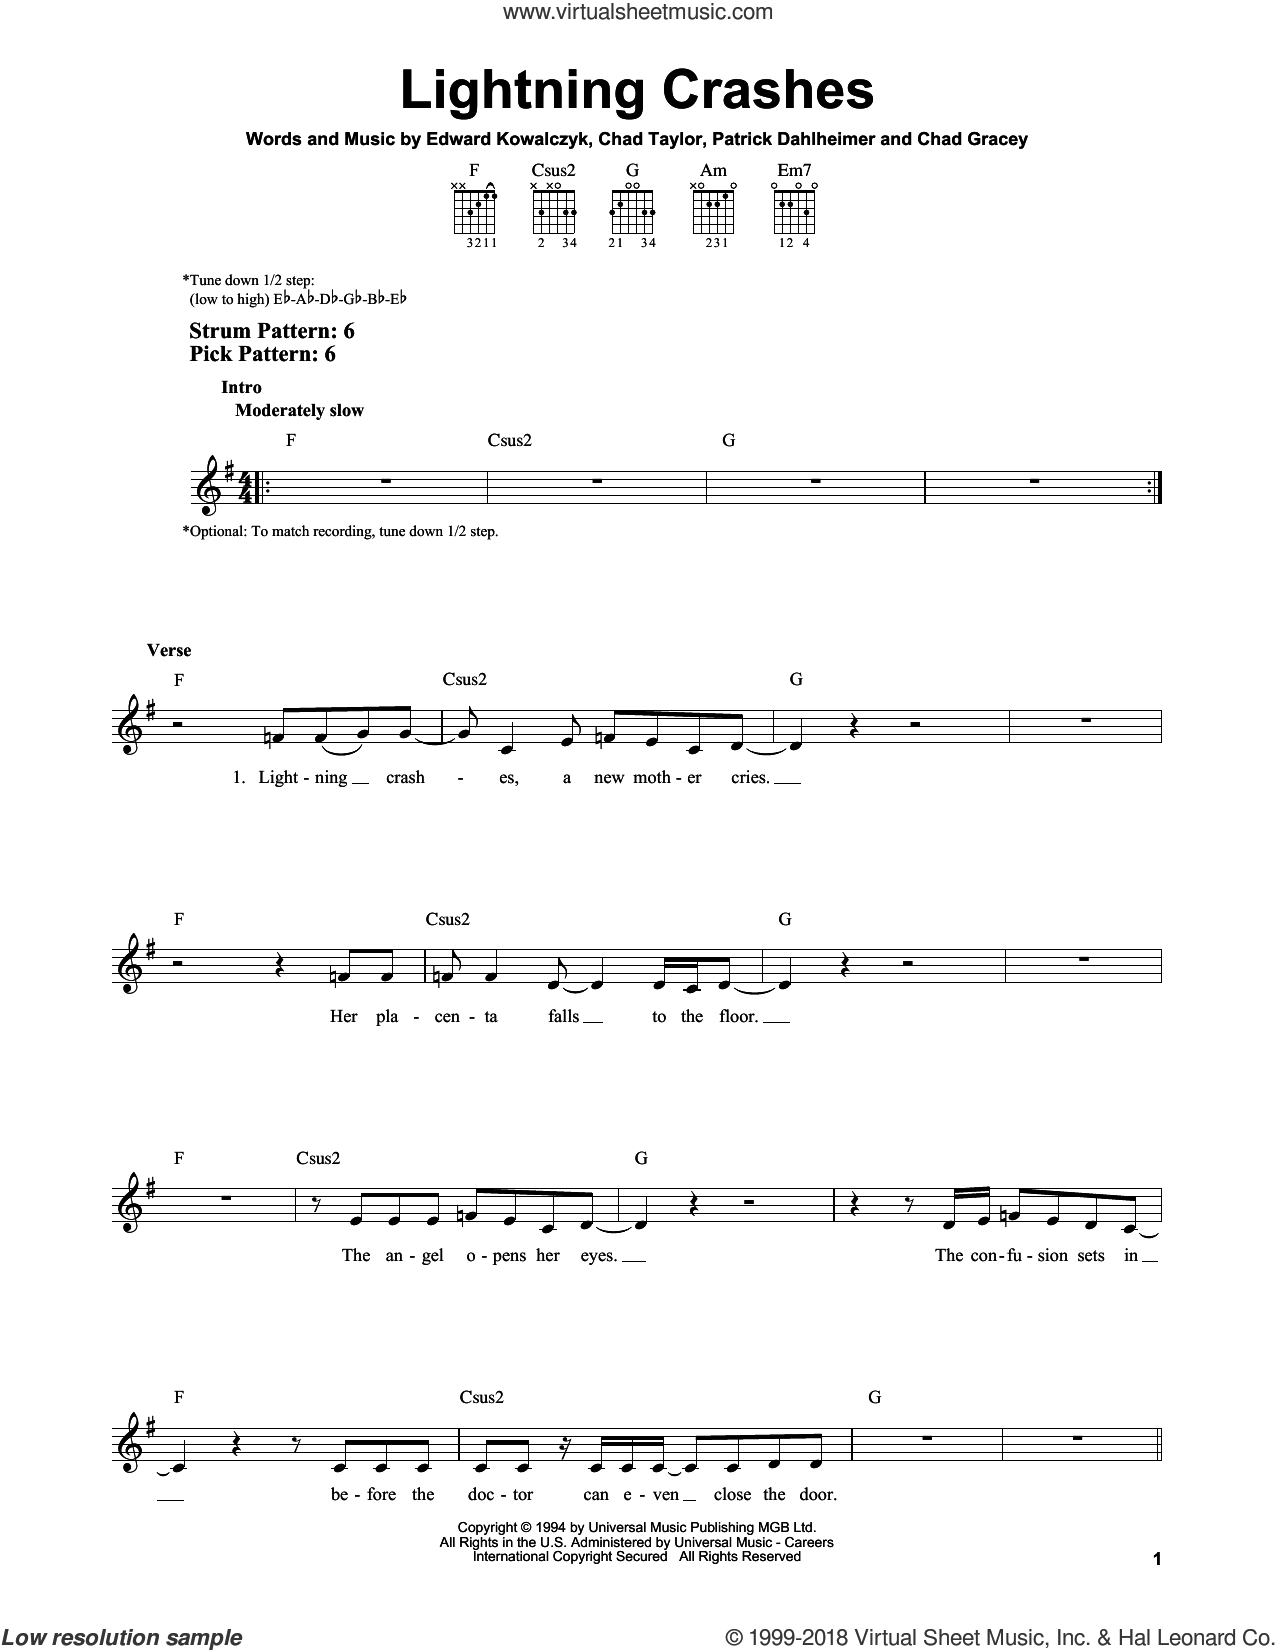 Lightning Crashes sheet music for guitar solo (chords) by Live, Chad Gracey, Chad Taylor, Edward Kowalczyk and Patrick Dahlheimer, easy guitar (chords)